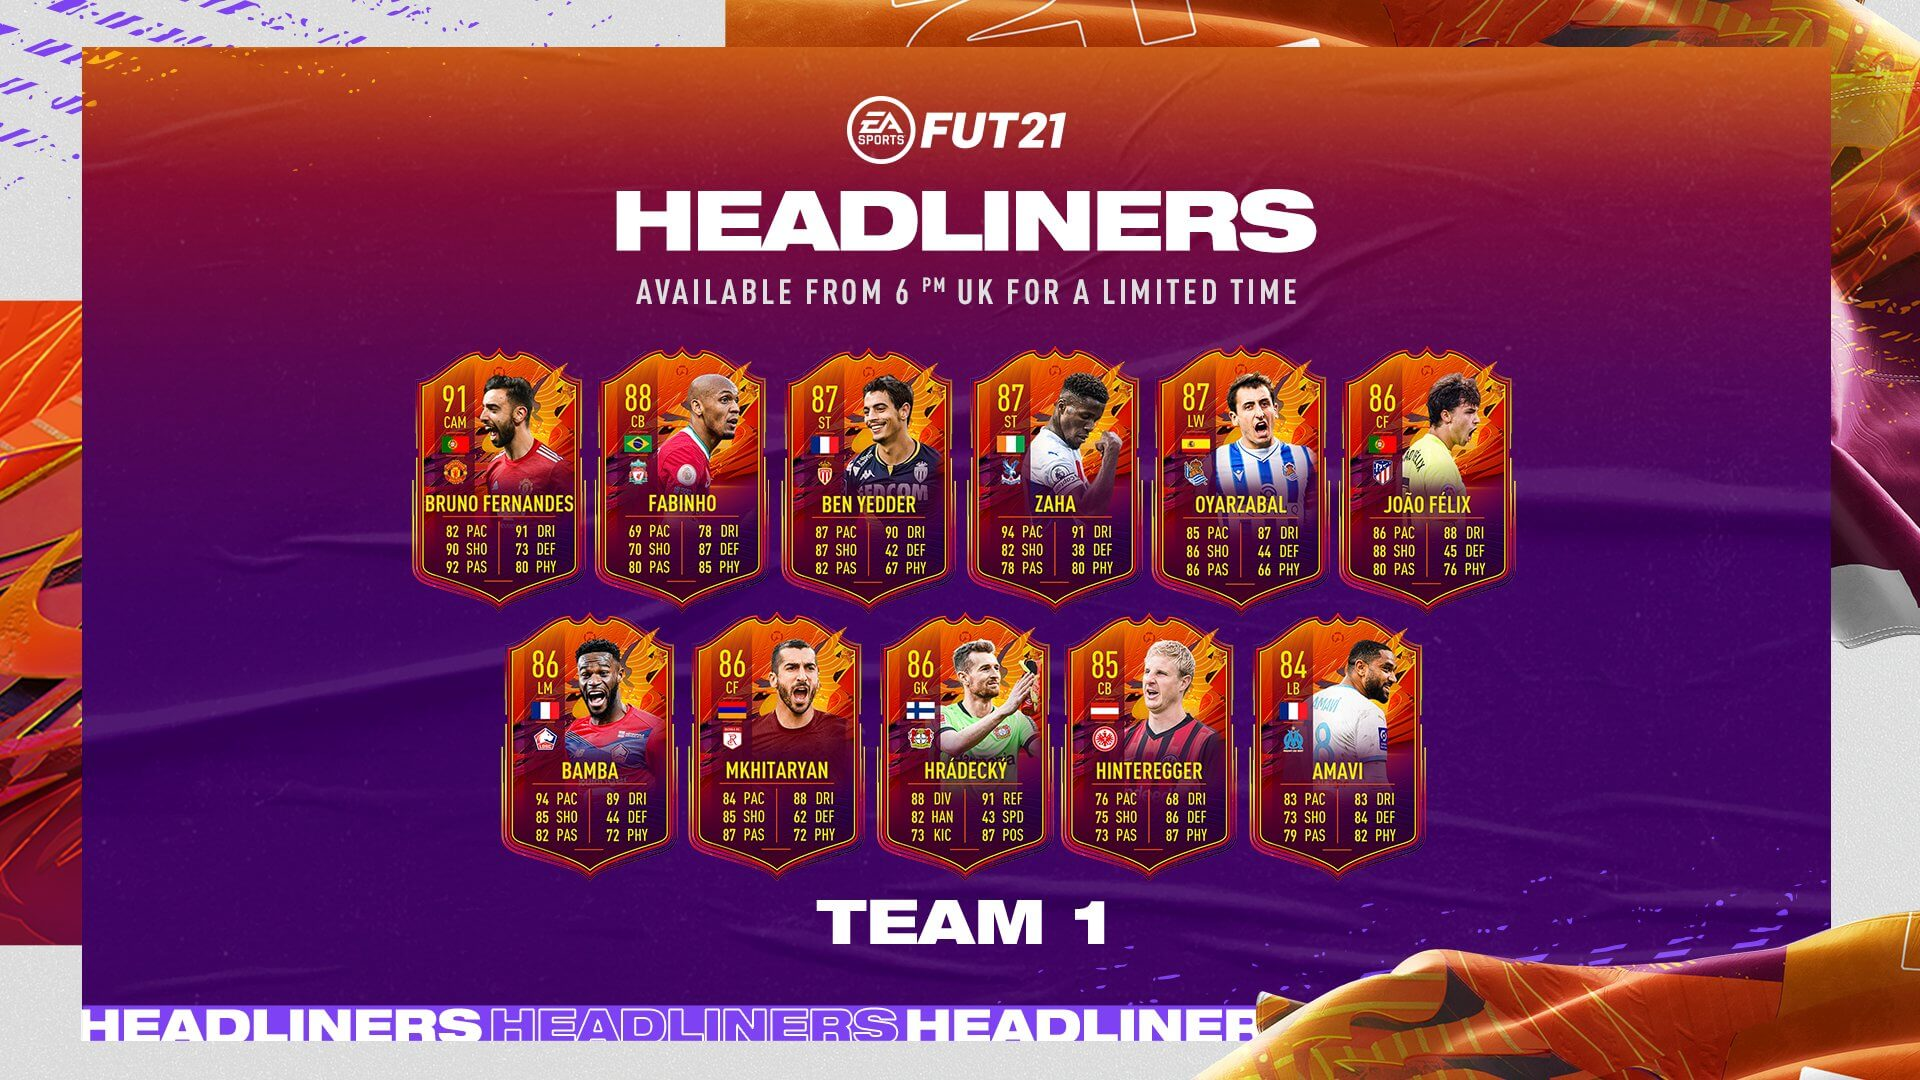 FIFA 21: Headliners team 1